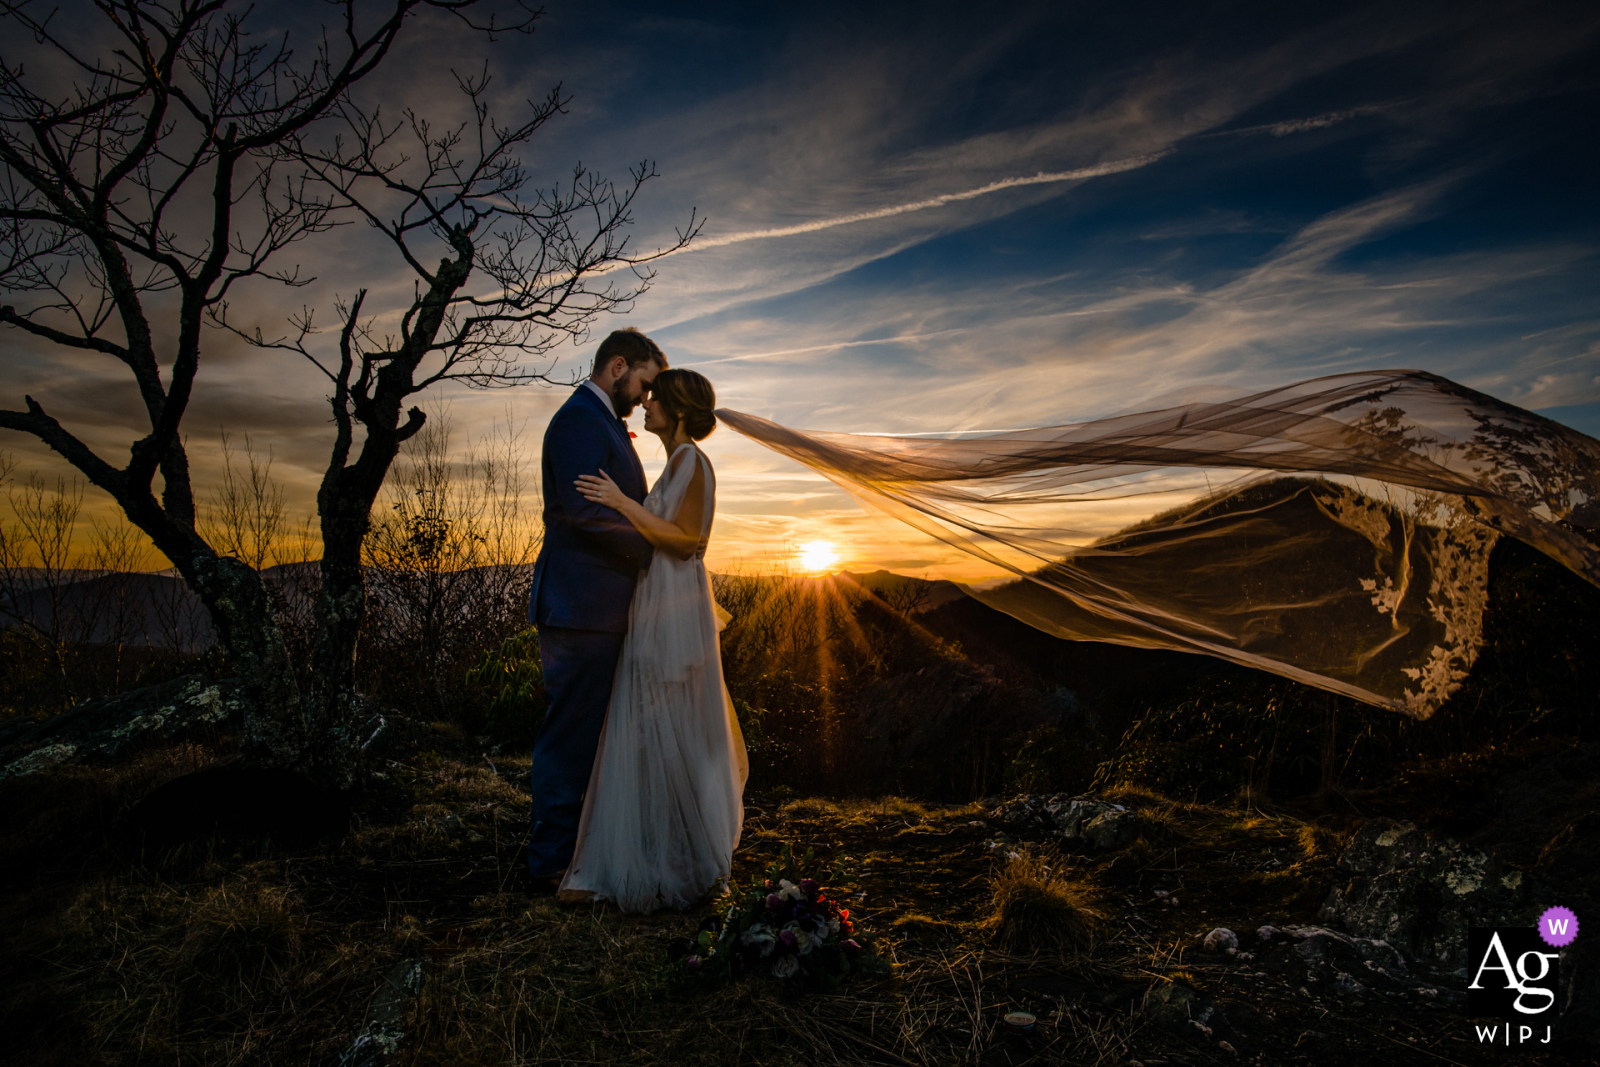 Jefferson, NC wedding portrait captured by photographer using the ridge lines and wind, I waited for the moment where the bride's veil took the same shape as the mountains. Sunset plus the wind added some drama to this image at the Twickenham House